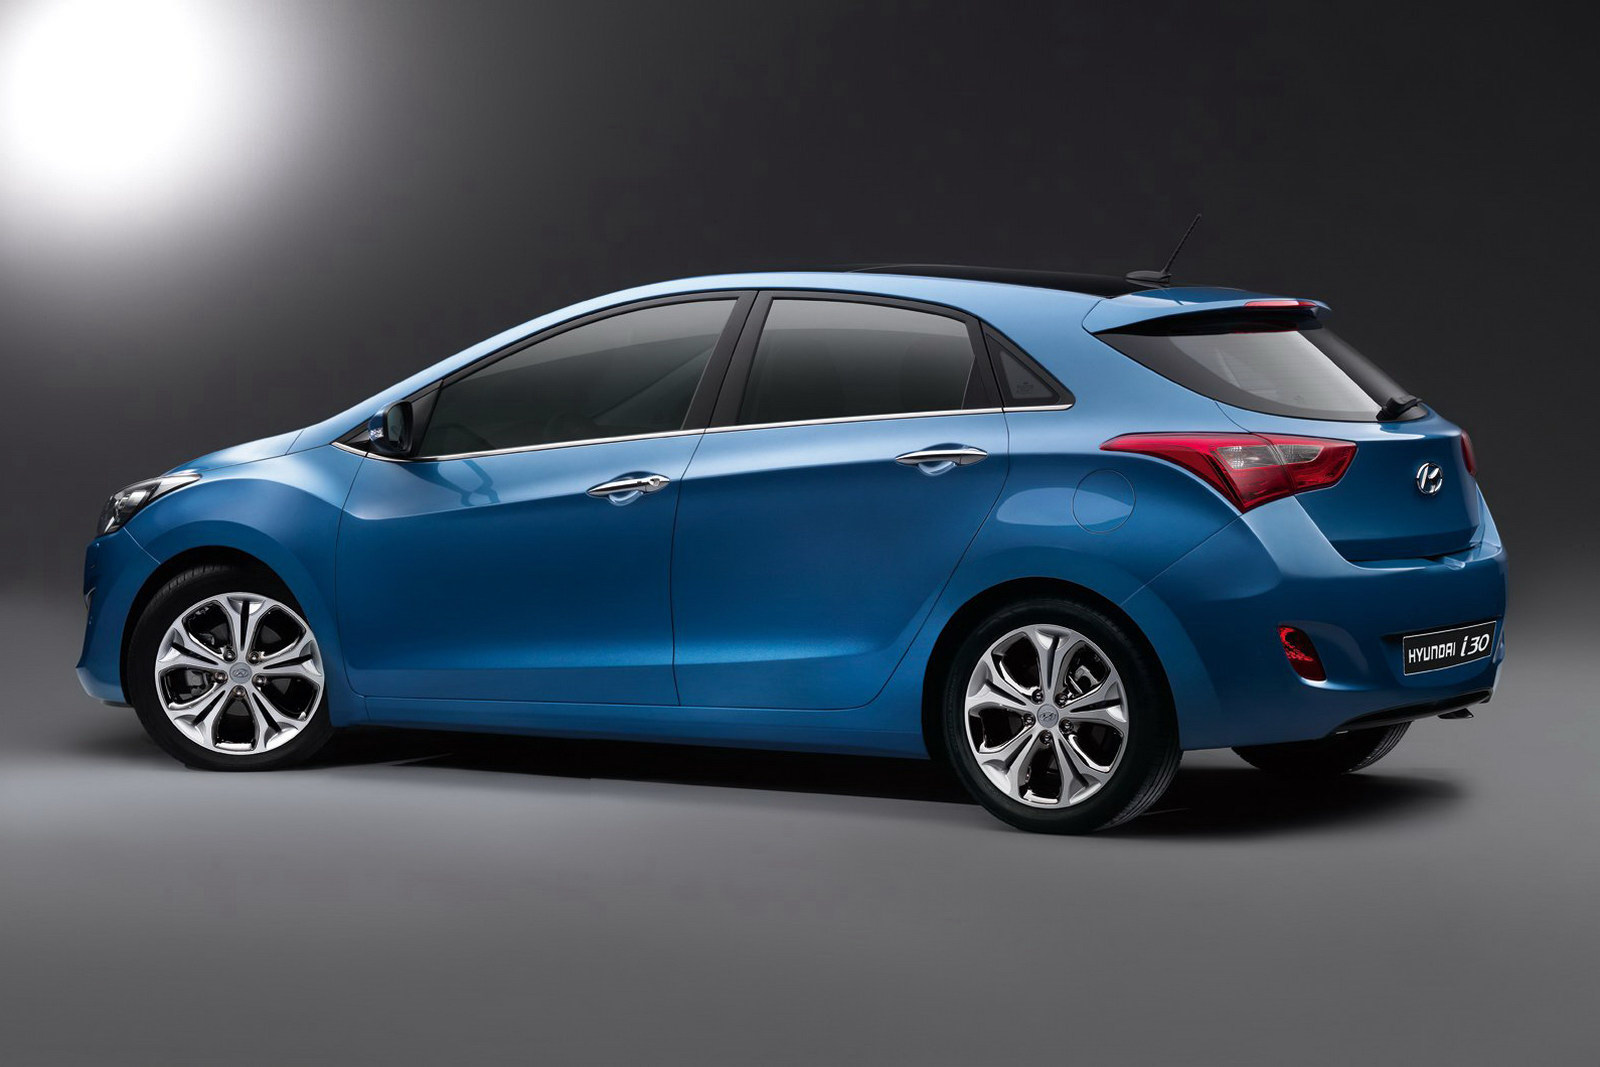 Hyundai i30 photo - 3